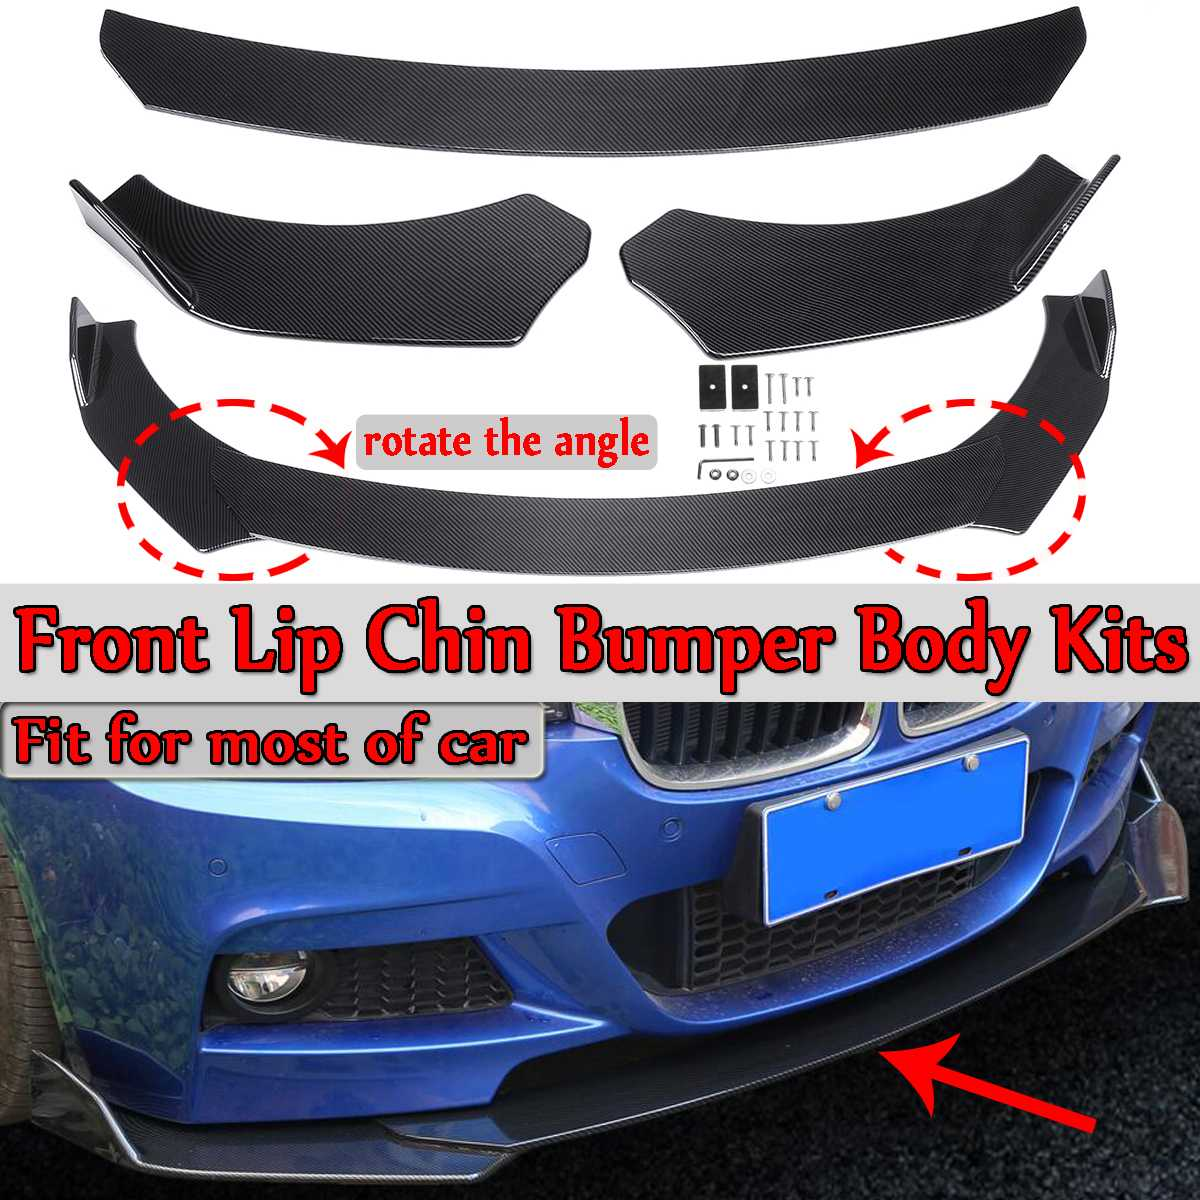 Universal 3Pieces Car Front Lip Chin Bumper Body Kits Carbon Fiber Look/ Black Rotate The Angle New For Honda For Audi For Benz